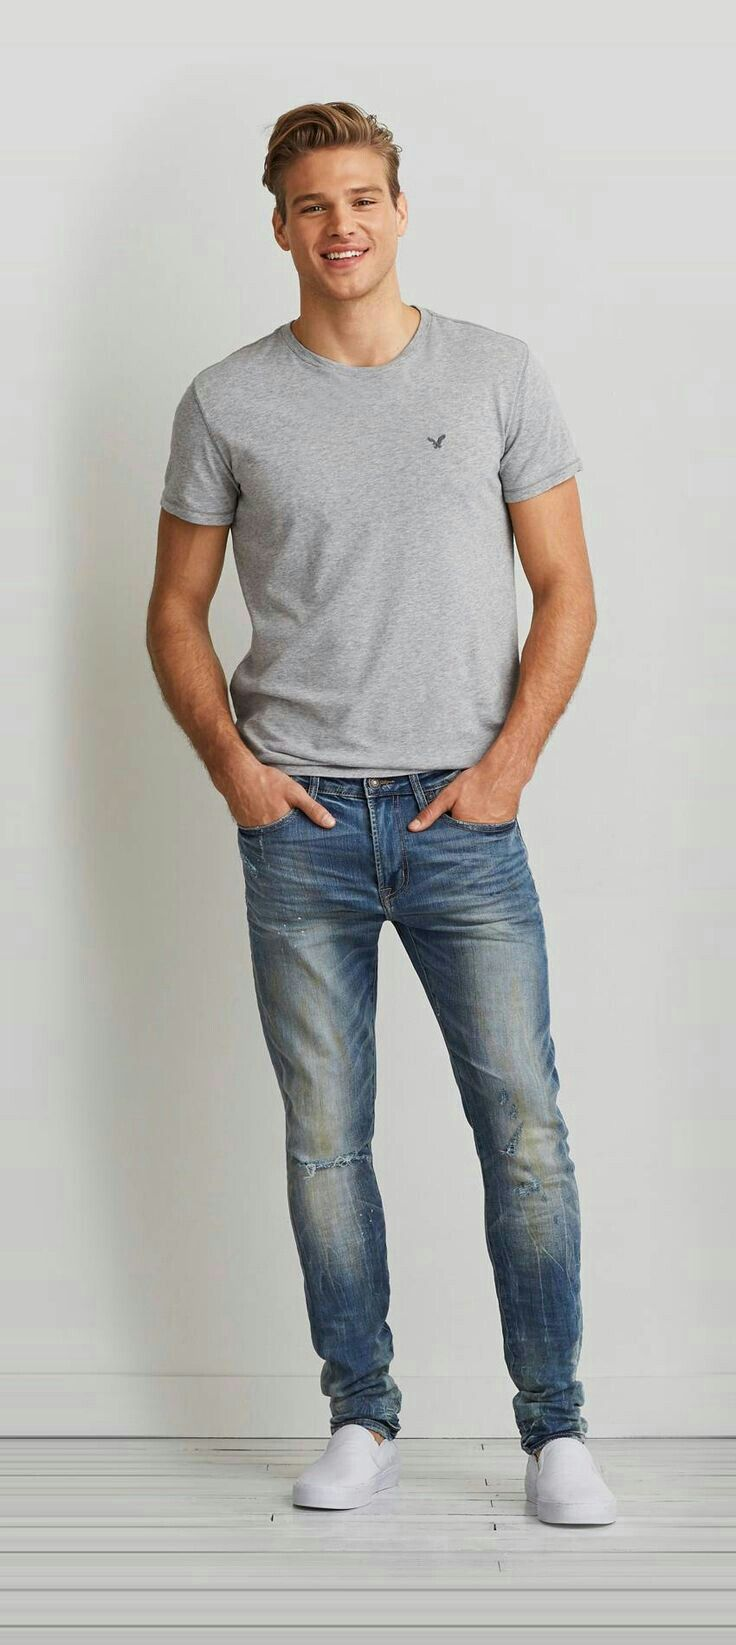 T-shirt-and-jean-trousers. 120+ Fashion Trends and Looks for College Students in 2021